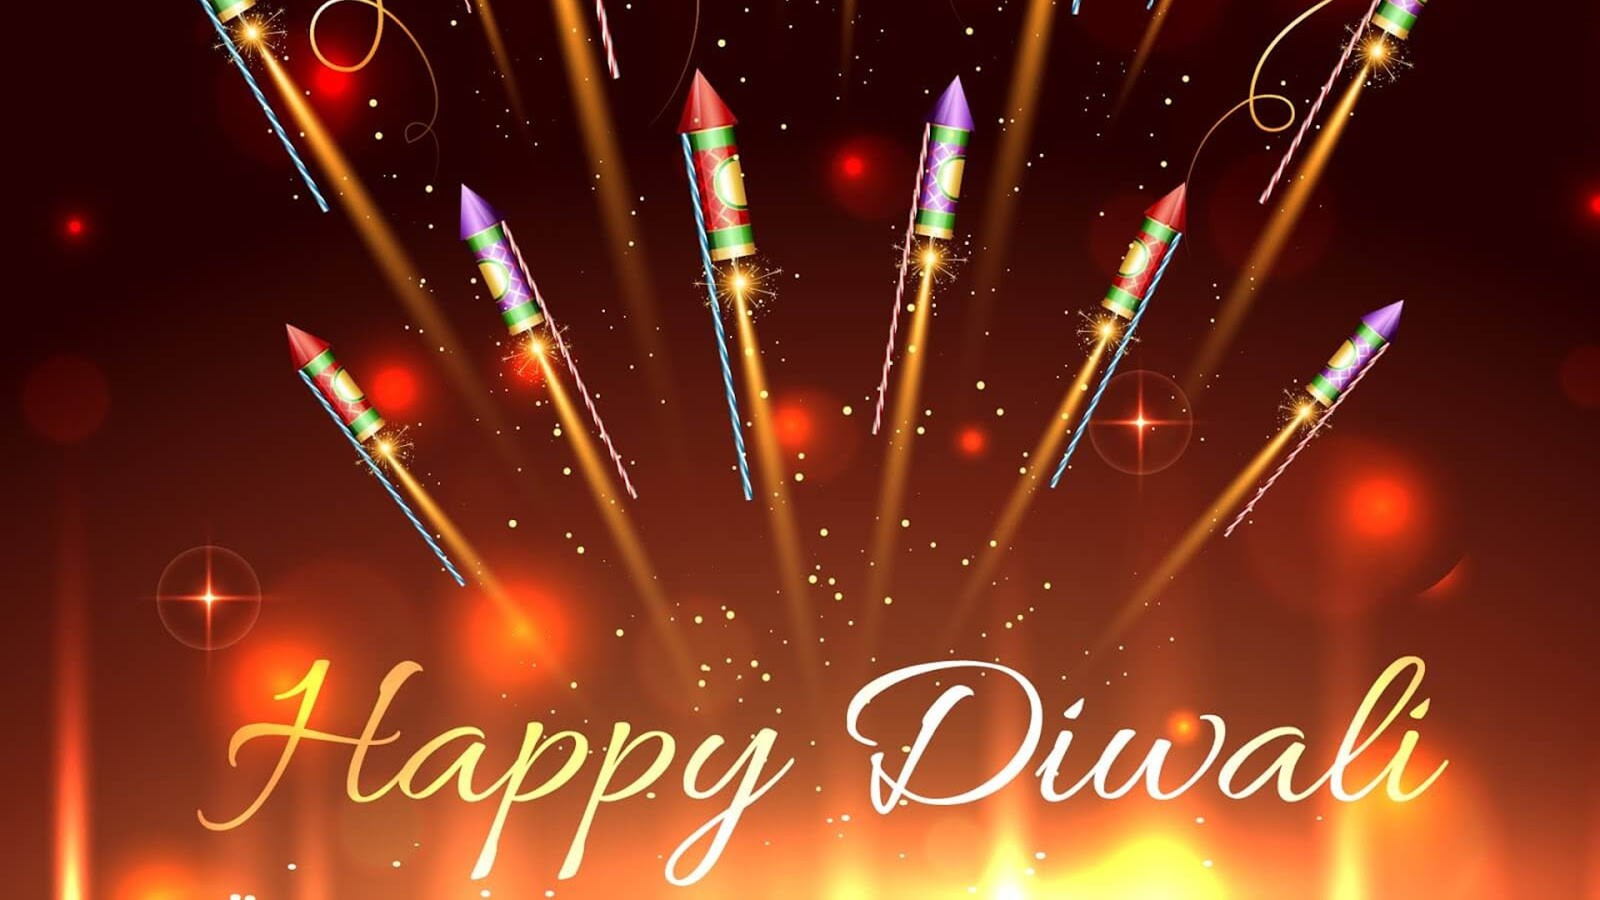 Wallpaper 3d Samsung Galaxy S4 Diwali Hd Images For Whatsapp Facebook Full Hd Wallpapers